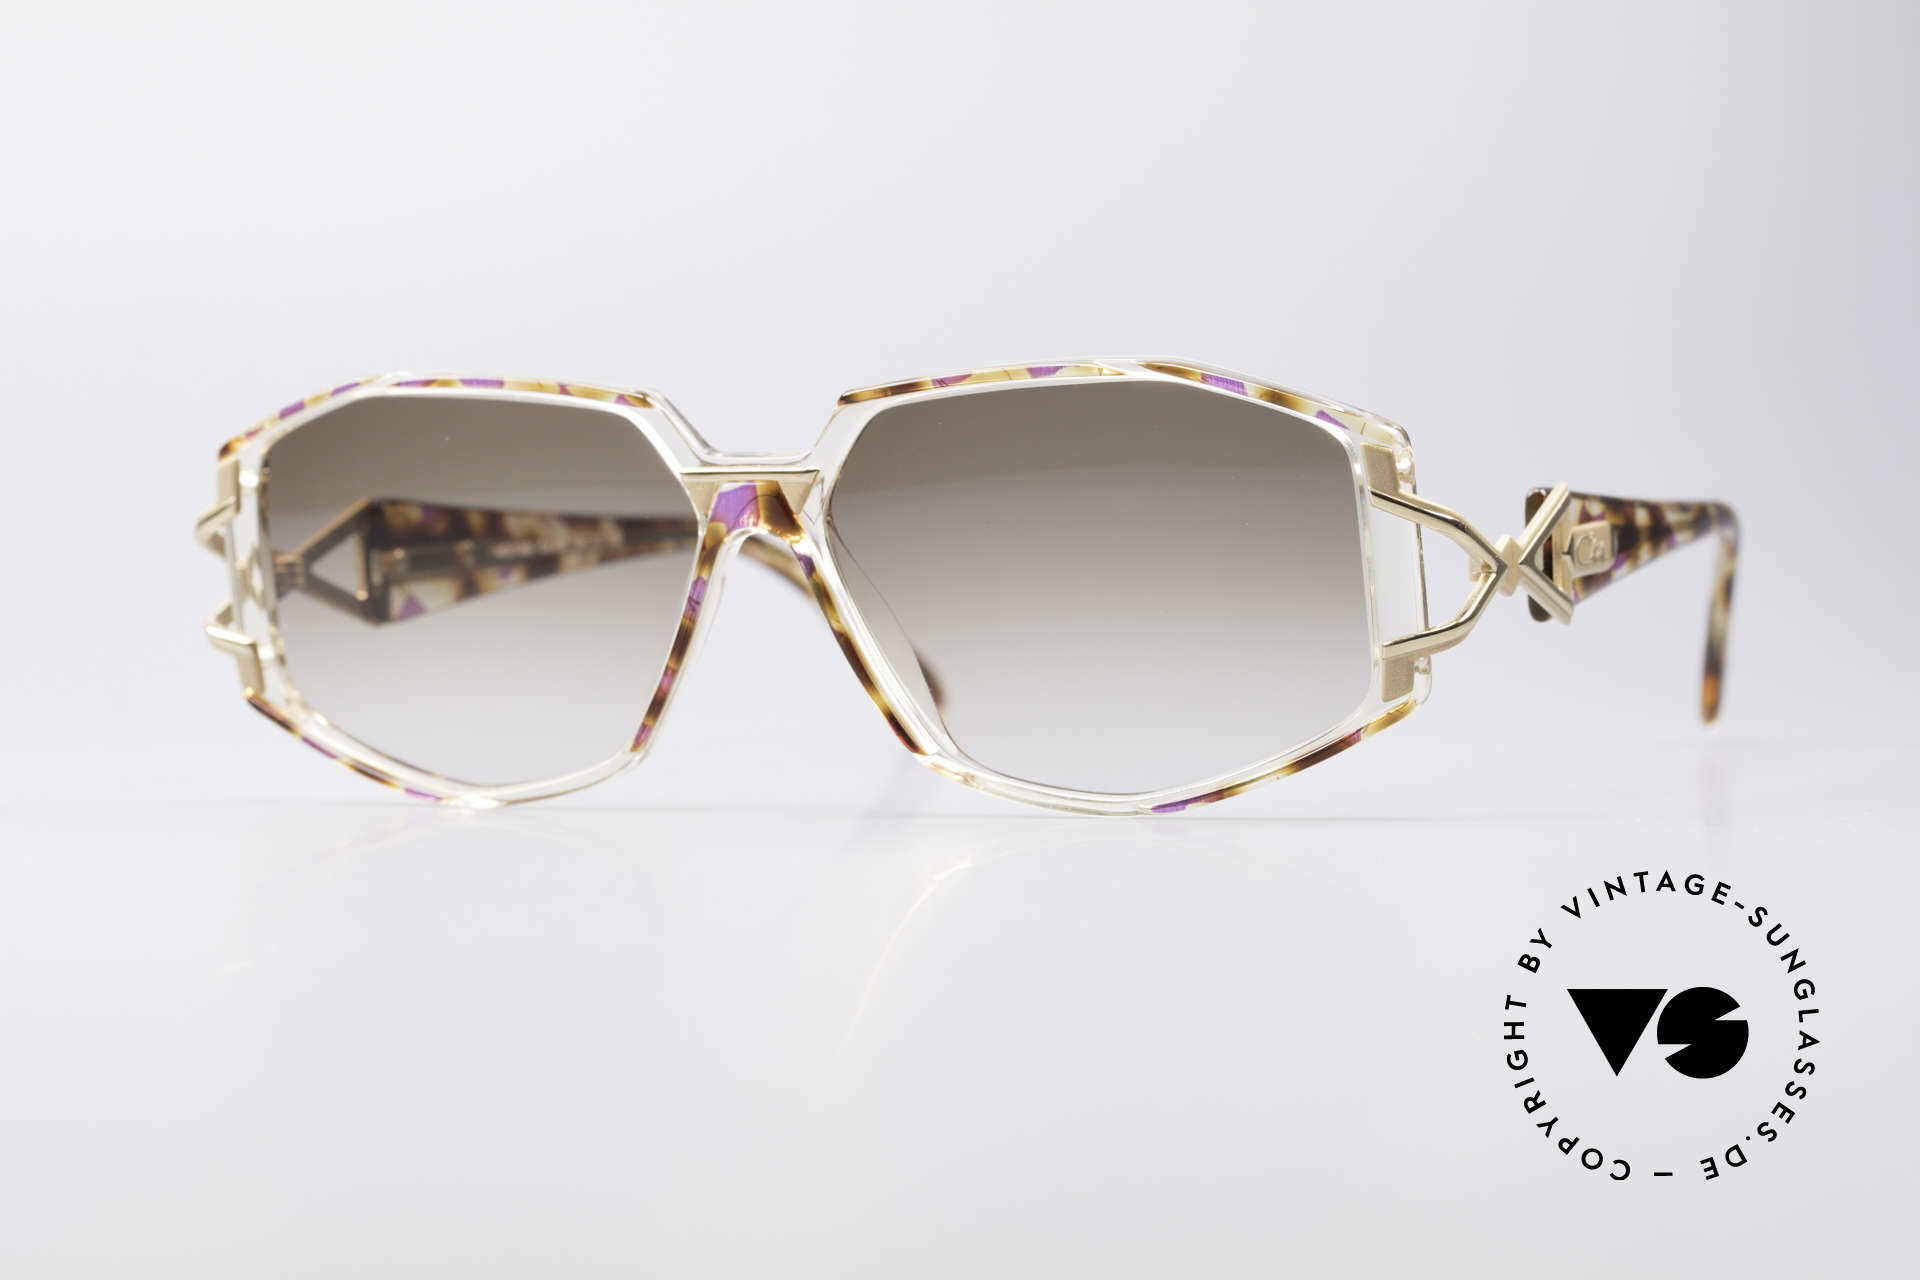 Cazal 368 Designer Shades Hip Hop Style, adorned Cazal sunglasses from the 90's, Hip Hop Style, Made for Women